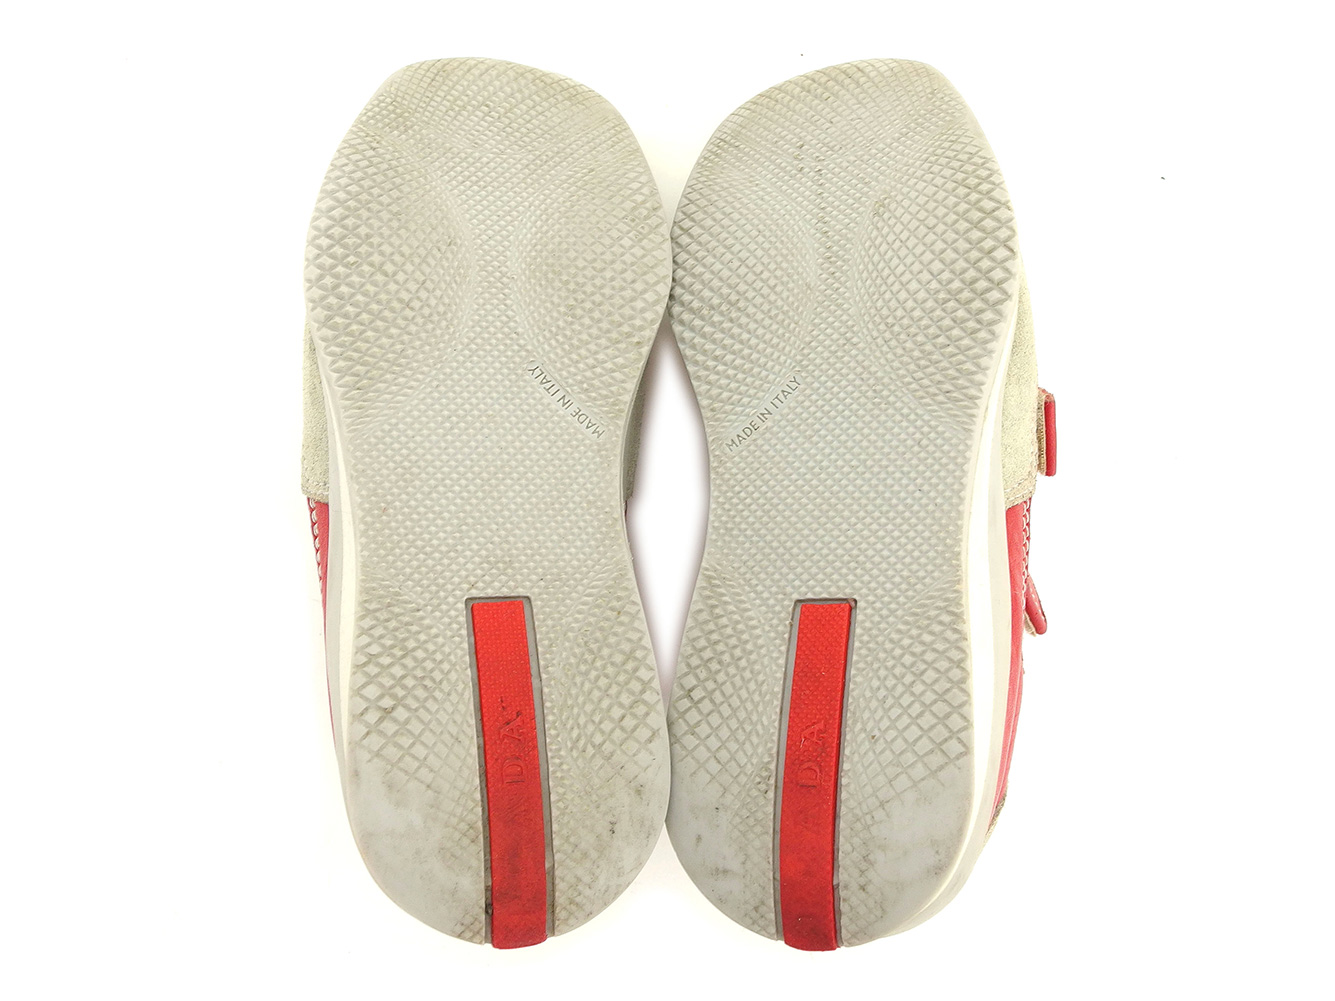 84938113d9455b Prada PRADA sneakers shoes shoes girls Boys possible ♯ 28 sports line kids  Velcro red gray gray silver leather X suede X rubber popularity T6280